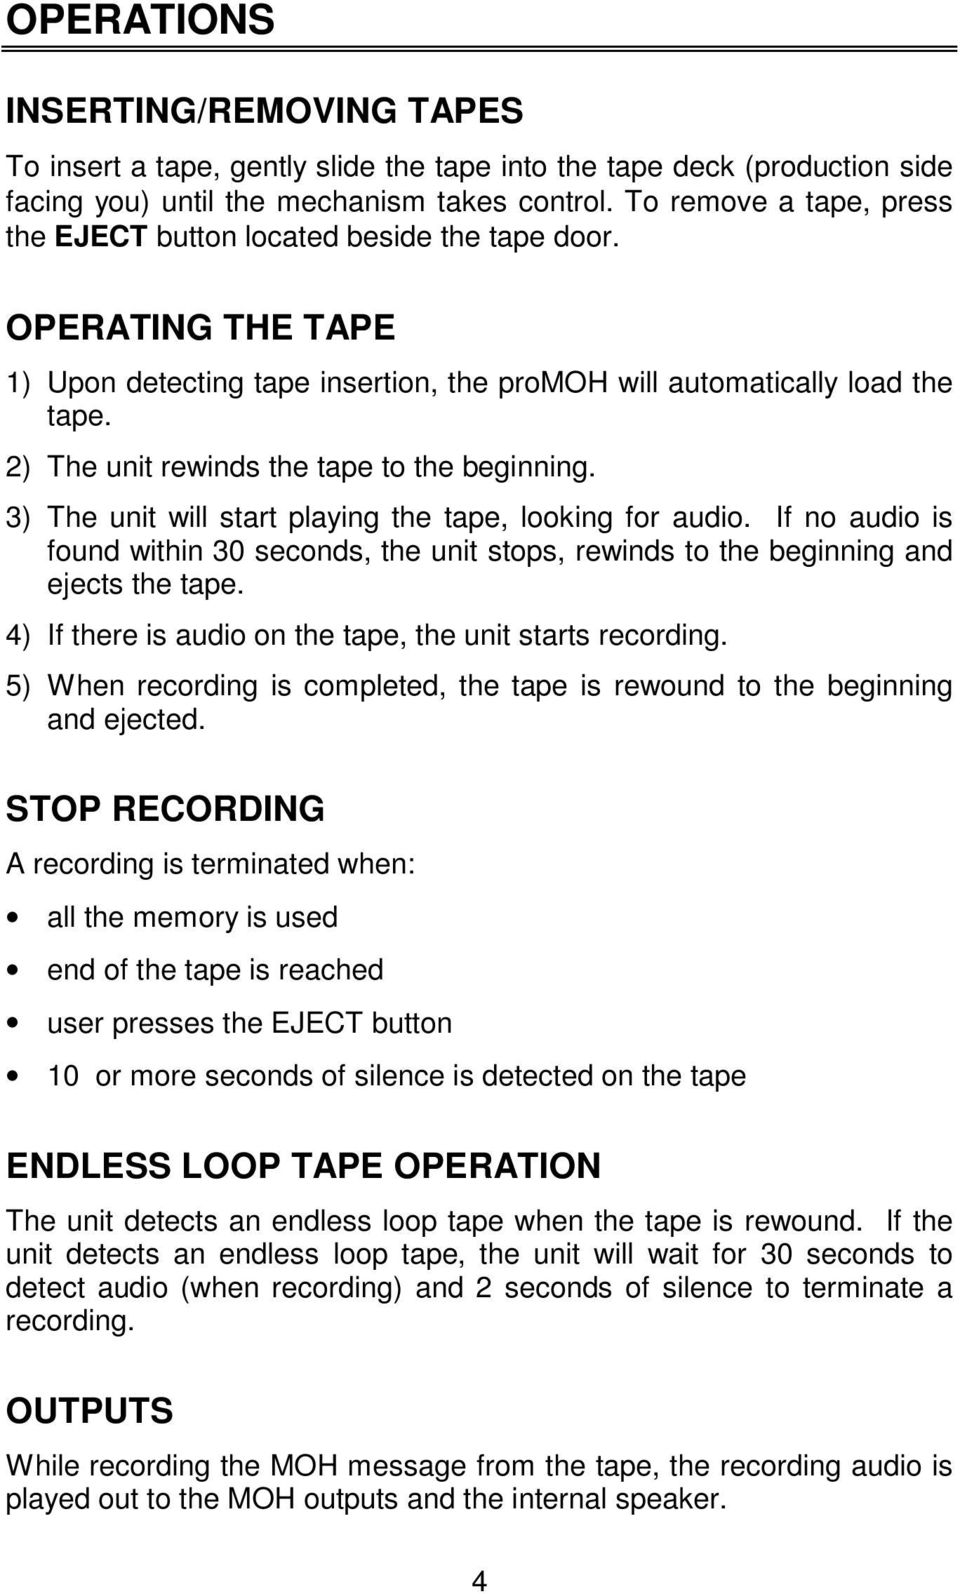 2) The unit rewinds the tape to the beginning. 3) The unit will start playing the tape, looking for audio.